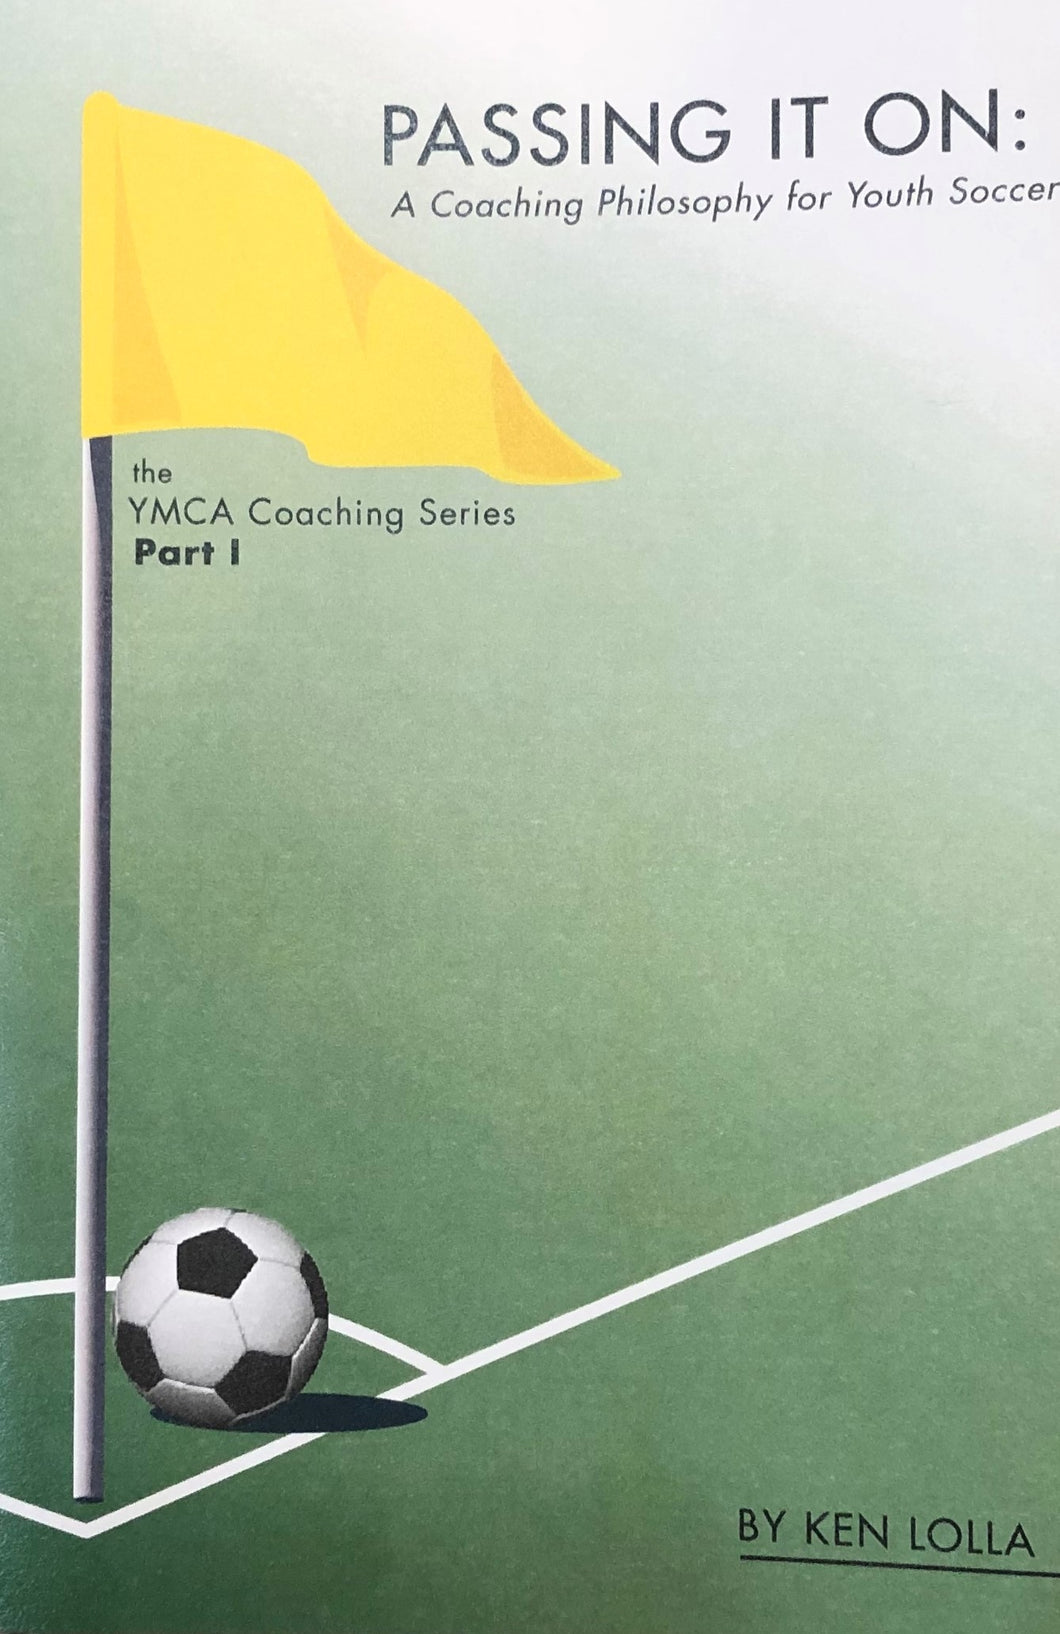 Passing It On: A Coaching Philosophy for Youth Soccer